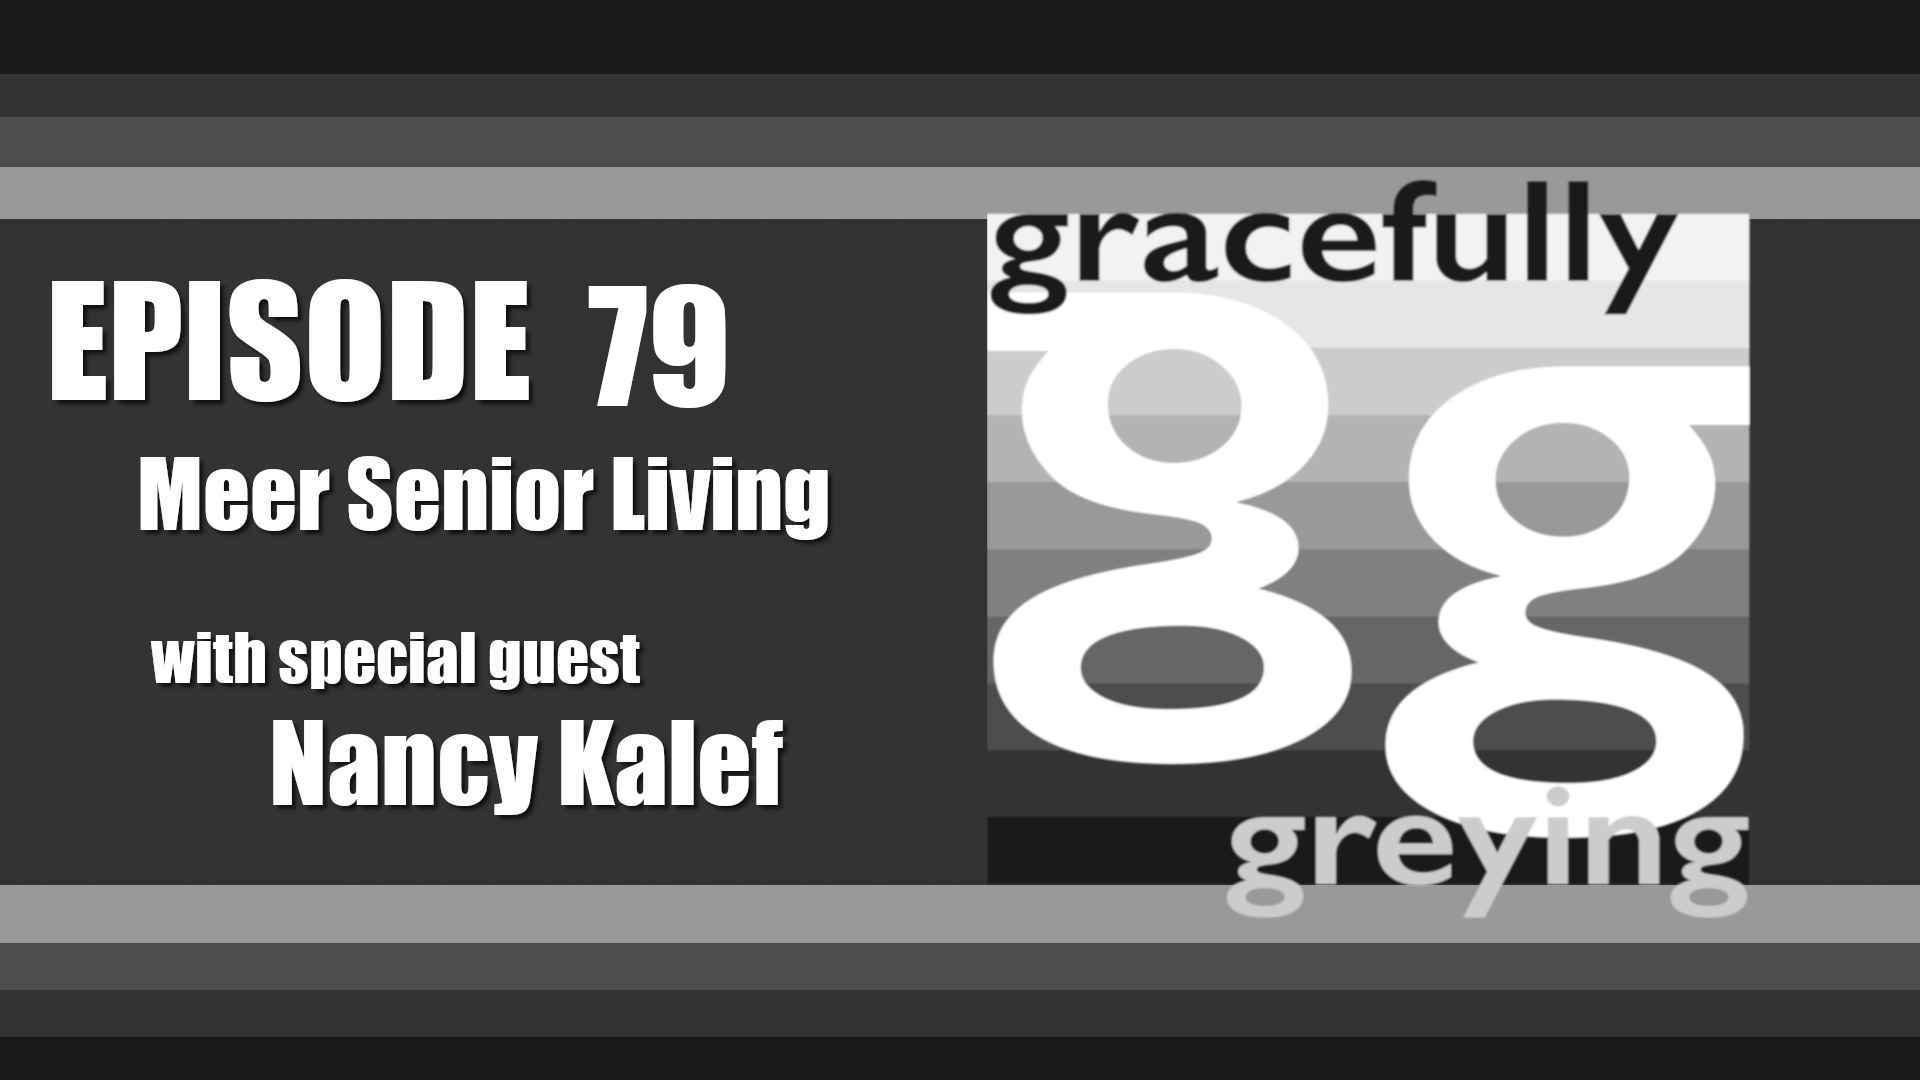 Gracefully Greying - Episode 79